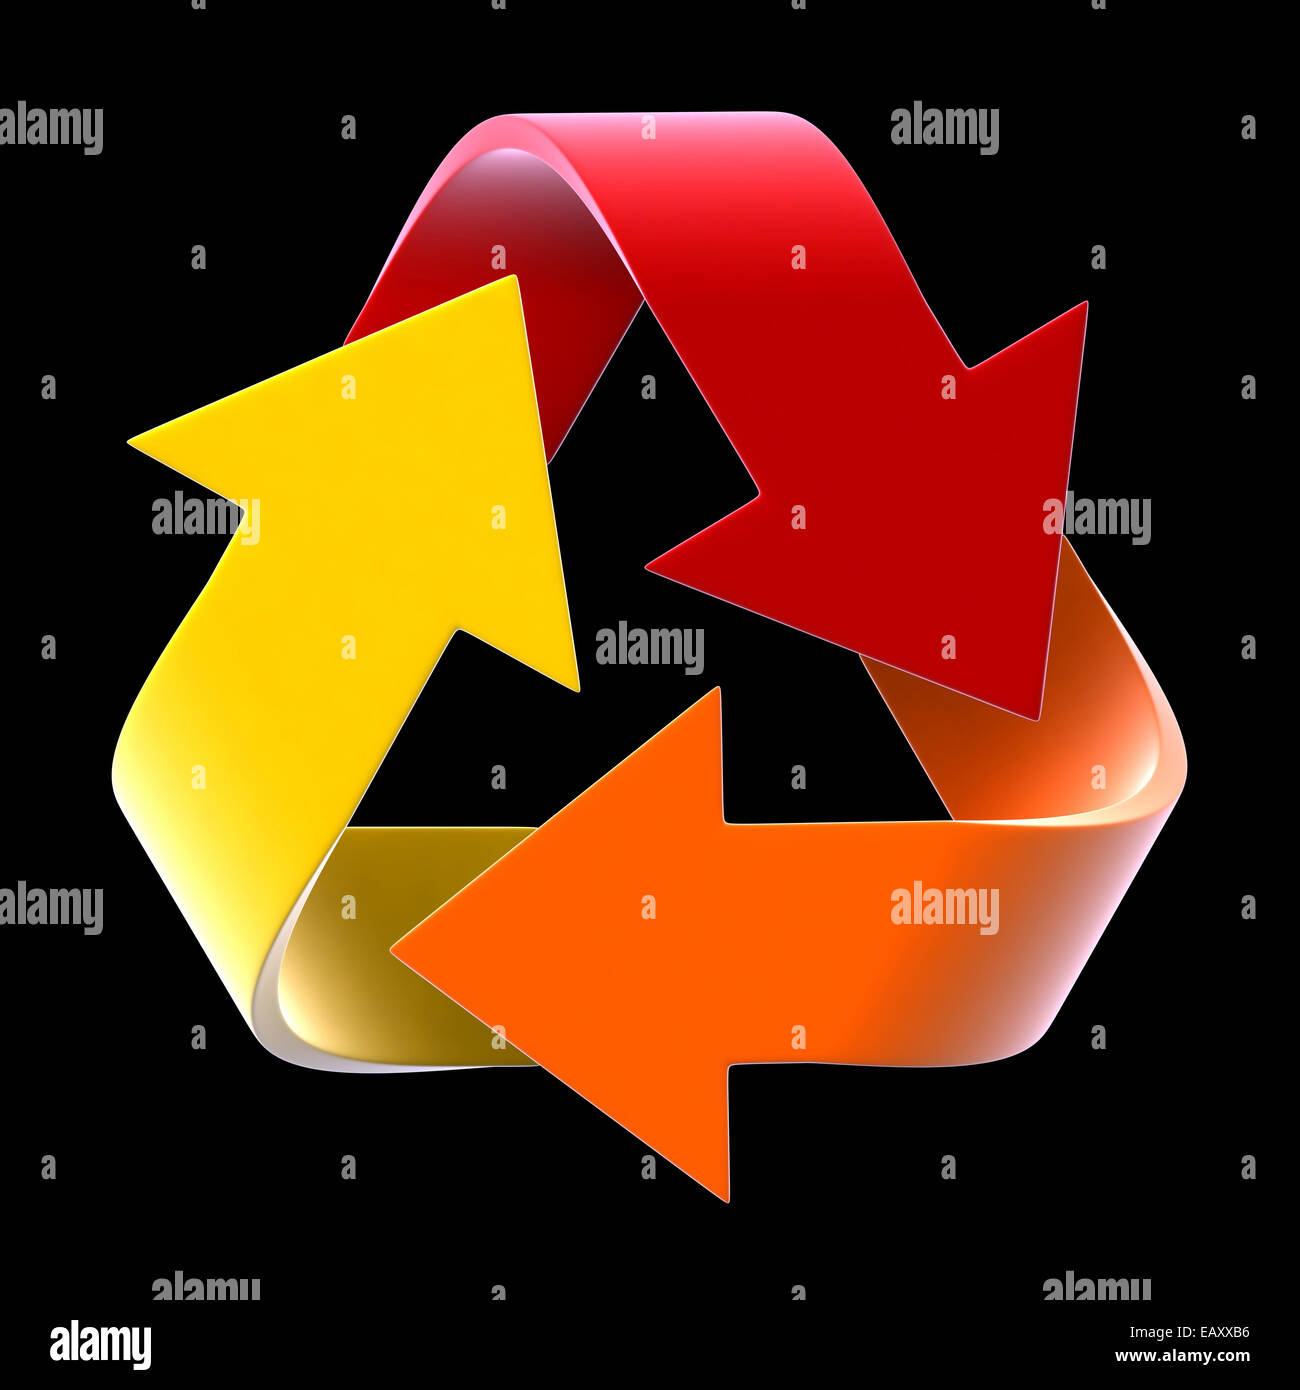 3d render of recycle symbol isolated on black background - Stock Image